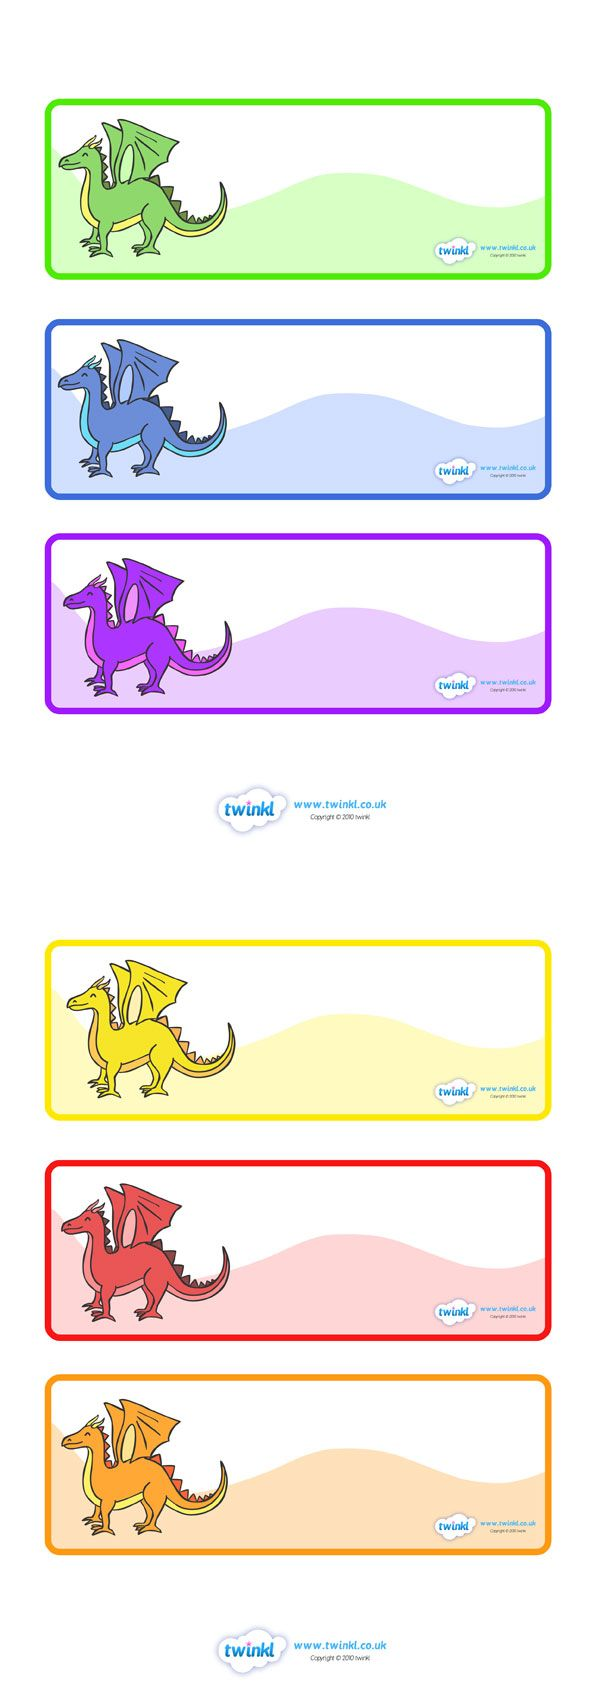 Twinkl Resources >> Editable Drawer - Peg - Name Labels  >> Thousands of printable primary teaching resources for EYFS, KS1, KS2 and beyond! classroom label, template, sticker, template resource, resource labels, editable labels, peg label, KS1, foundation labels, foundation stage, labels, teaching,